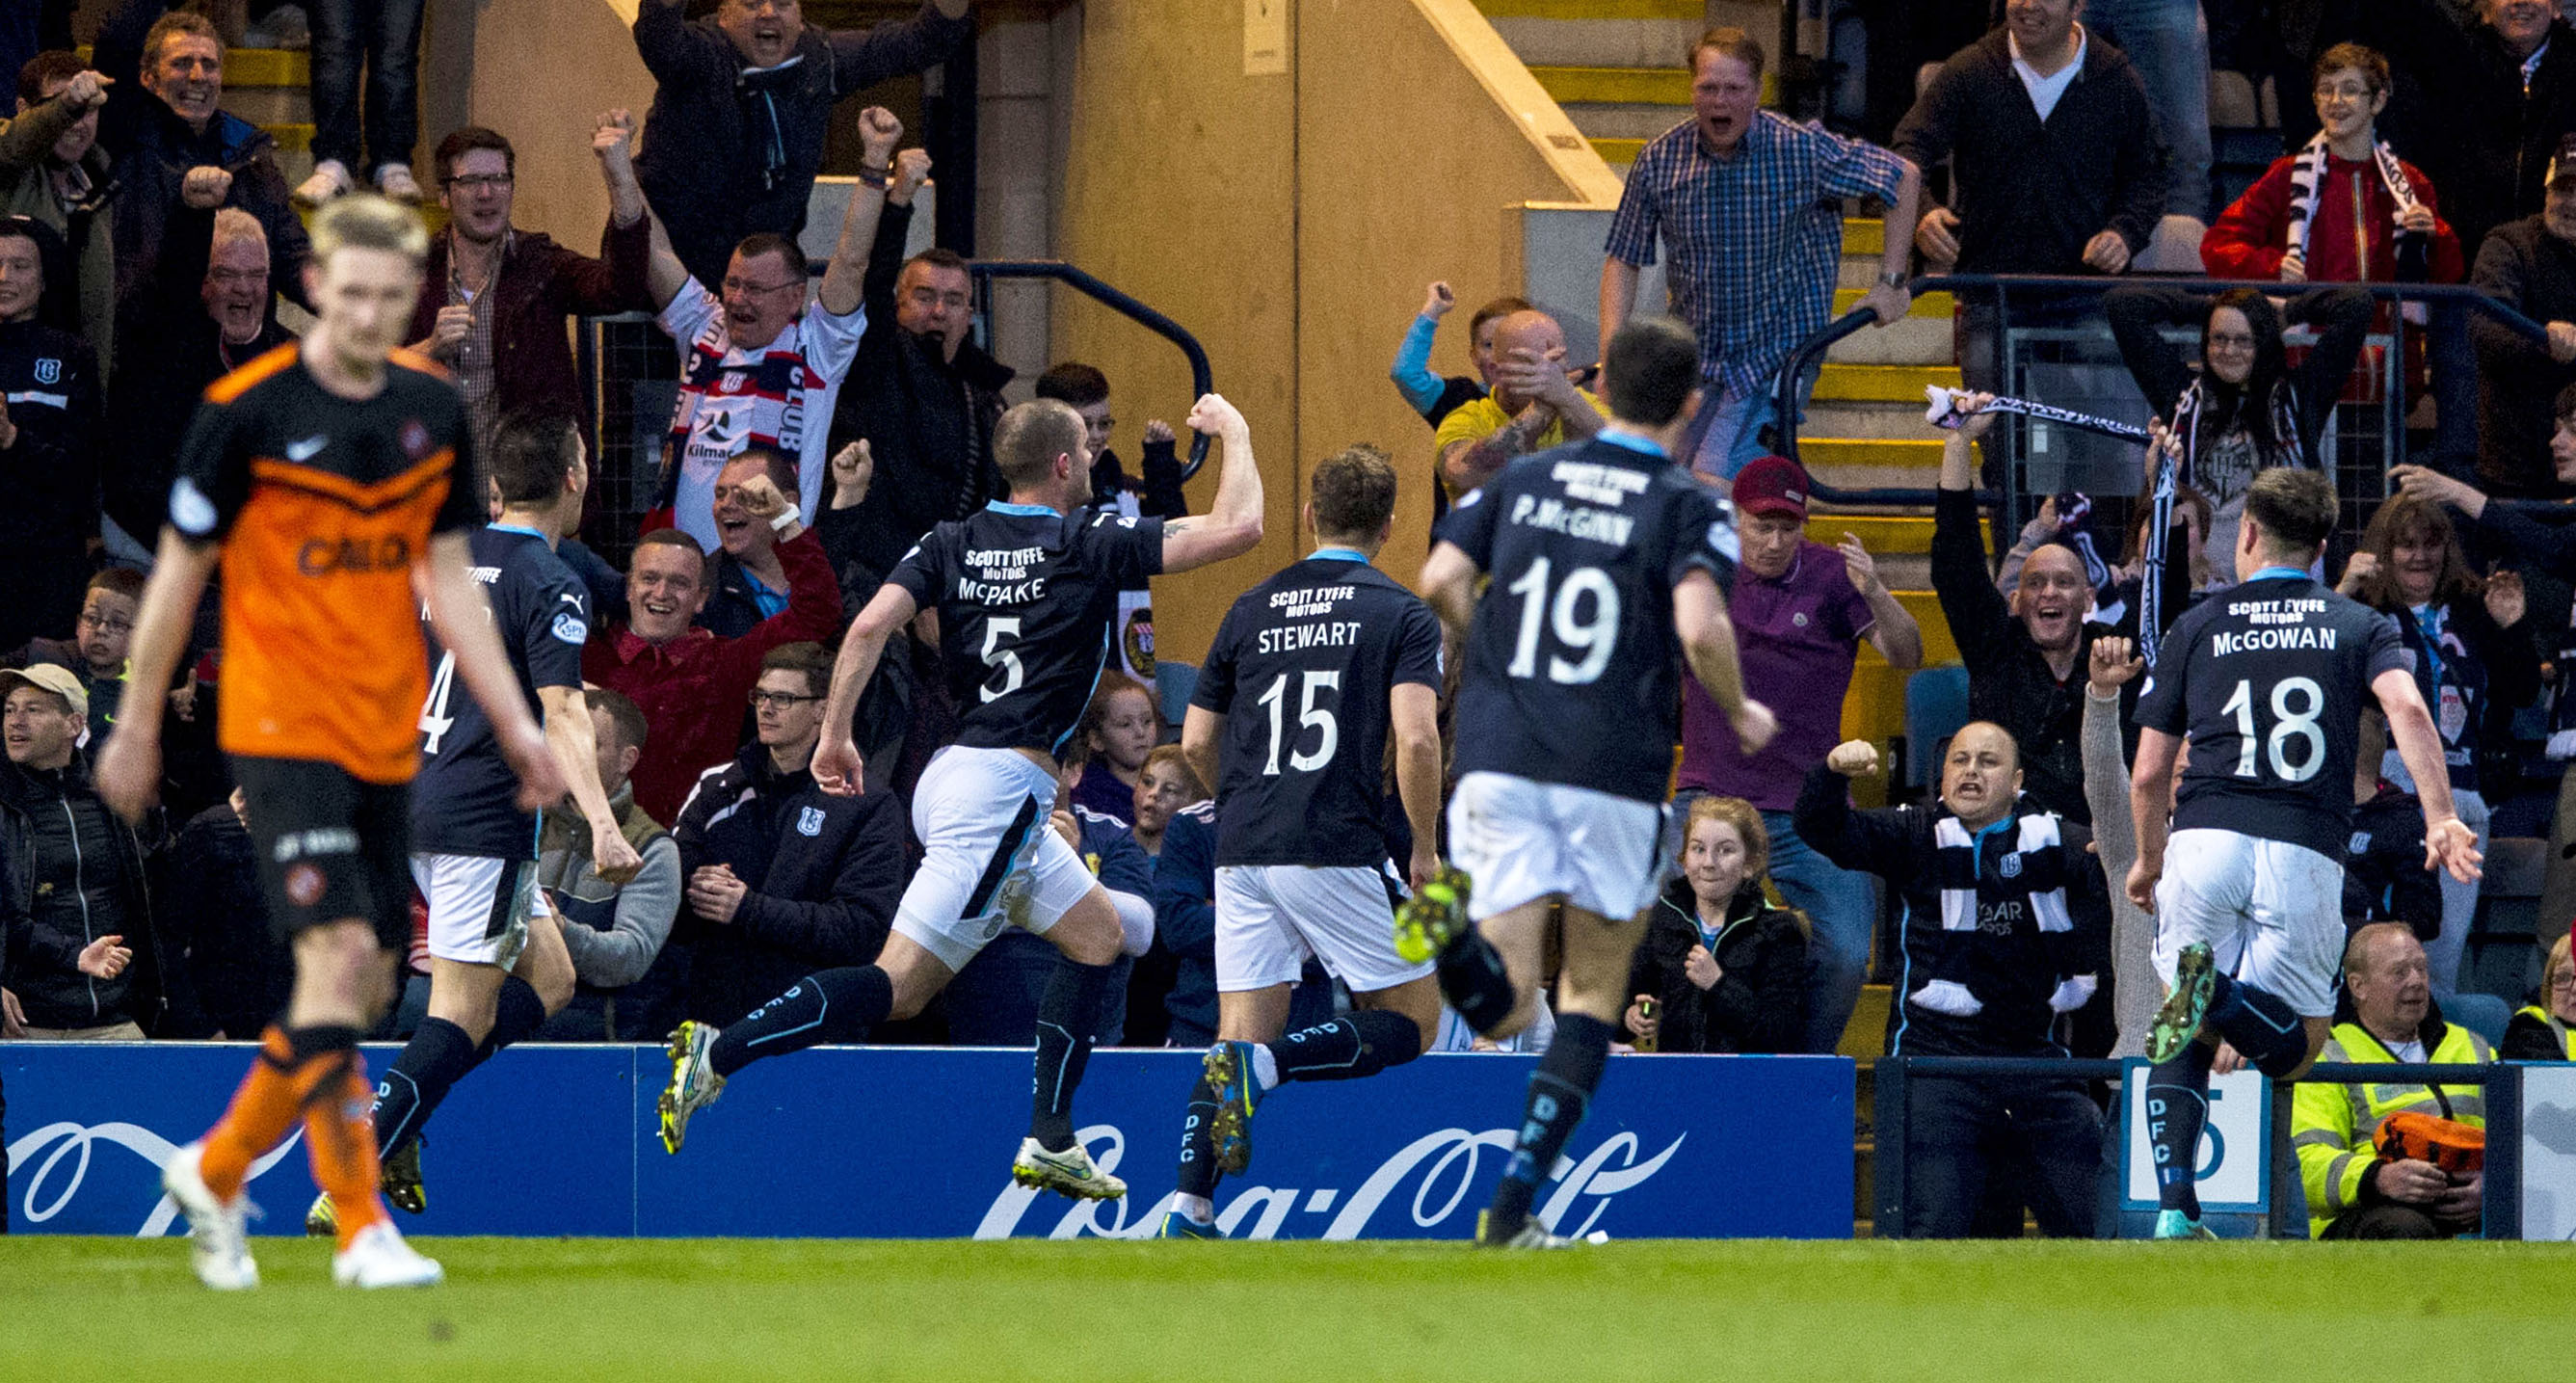 James McPake wheels away in celebration after restoring Dundee's lead in              their 3-1 Premiership derby win over Dundee United in April 2015.